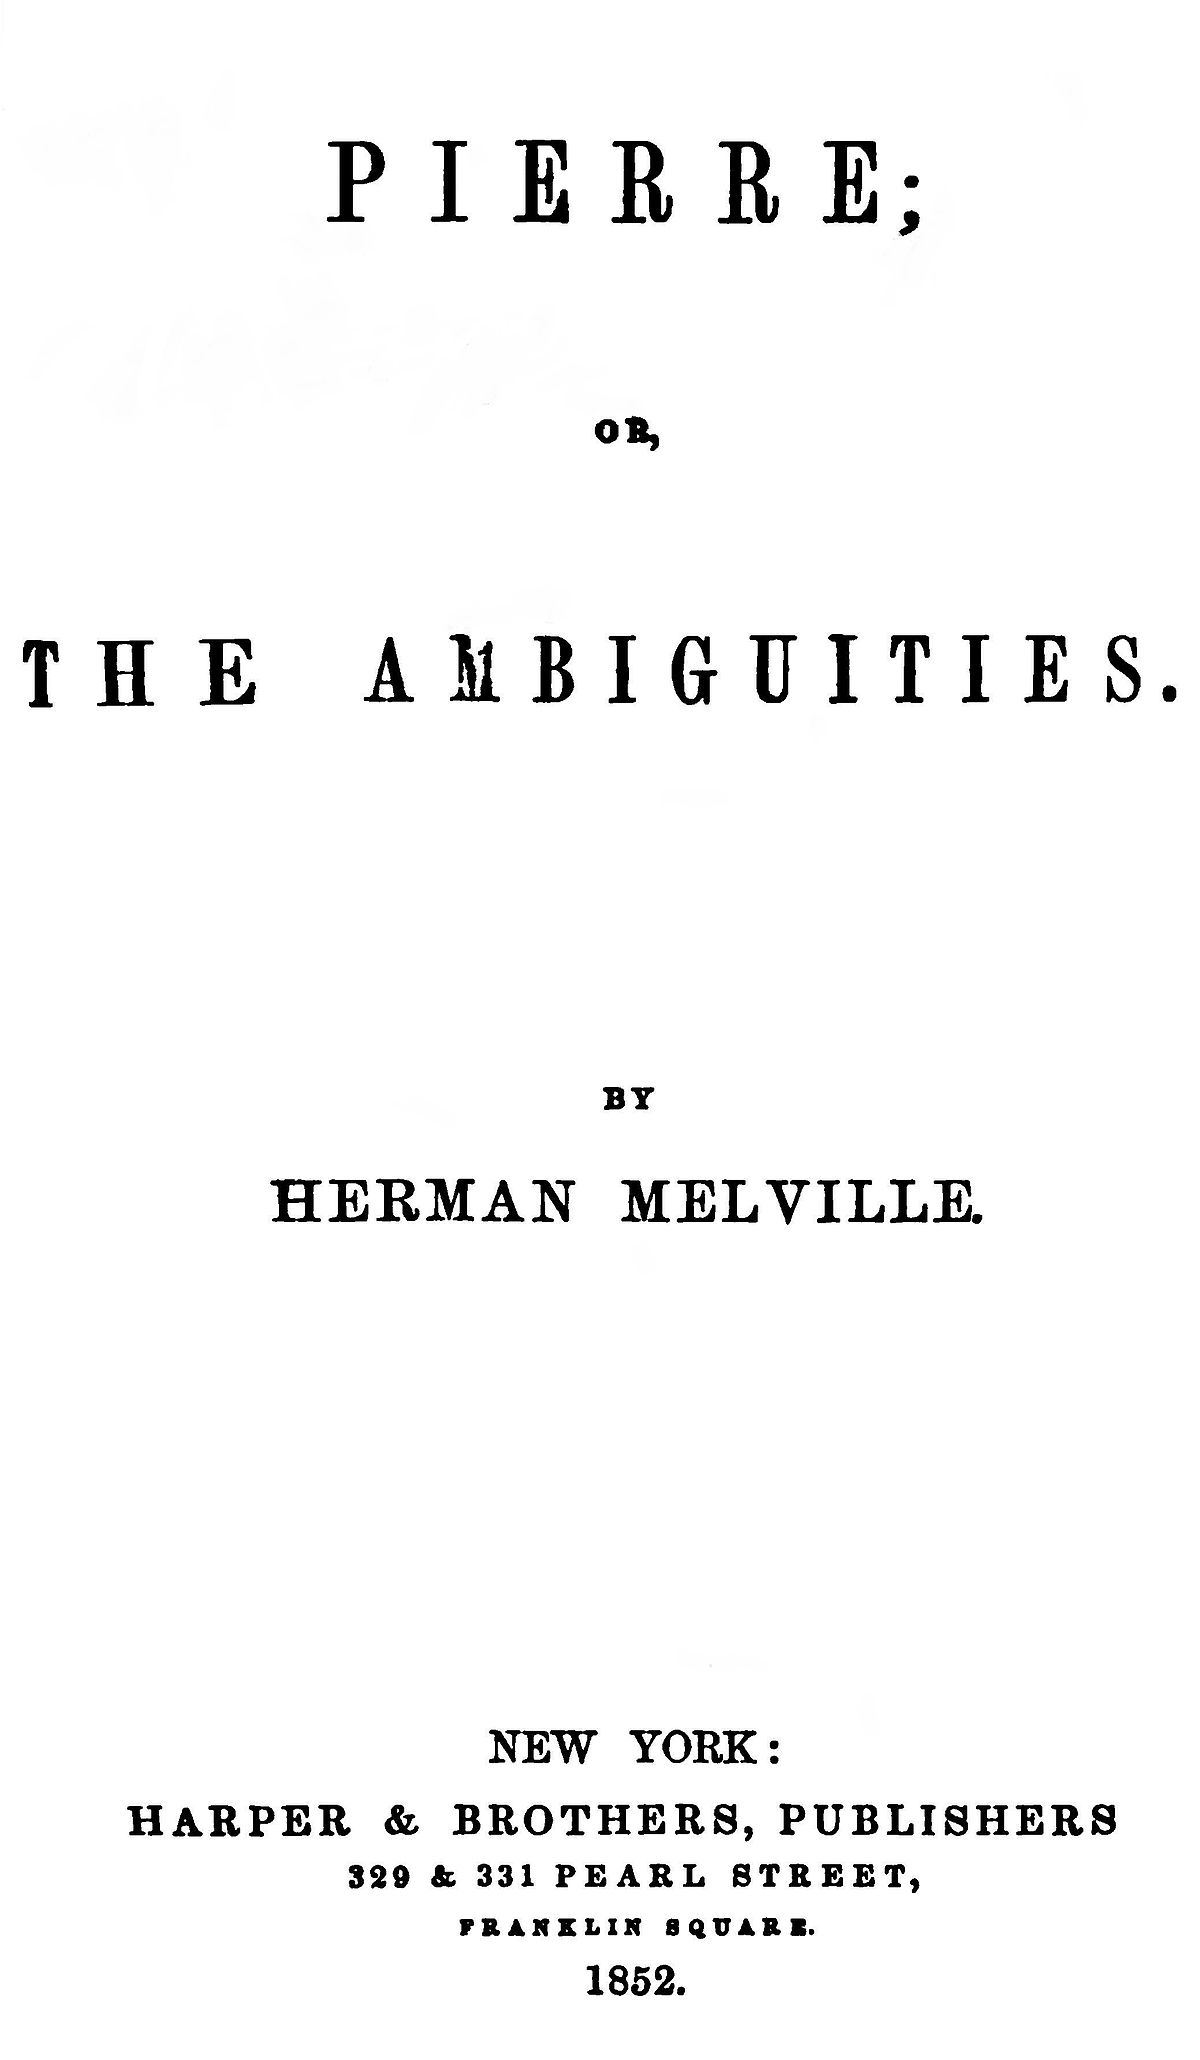 an analysis of herman melvilles bartebly Yet against this language of property rights, the story introduces a subtle counter-discourse of hazy motives, wishes and feelings bartleby's queer word of choice, to prefer, injects into the story a defiant note of desire, shifting our analysis of his occupancy from economic rights to preferences and wishes.